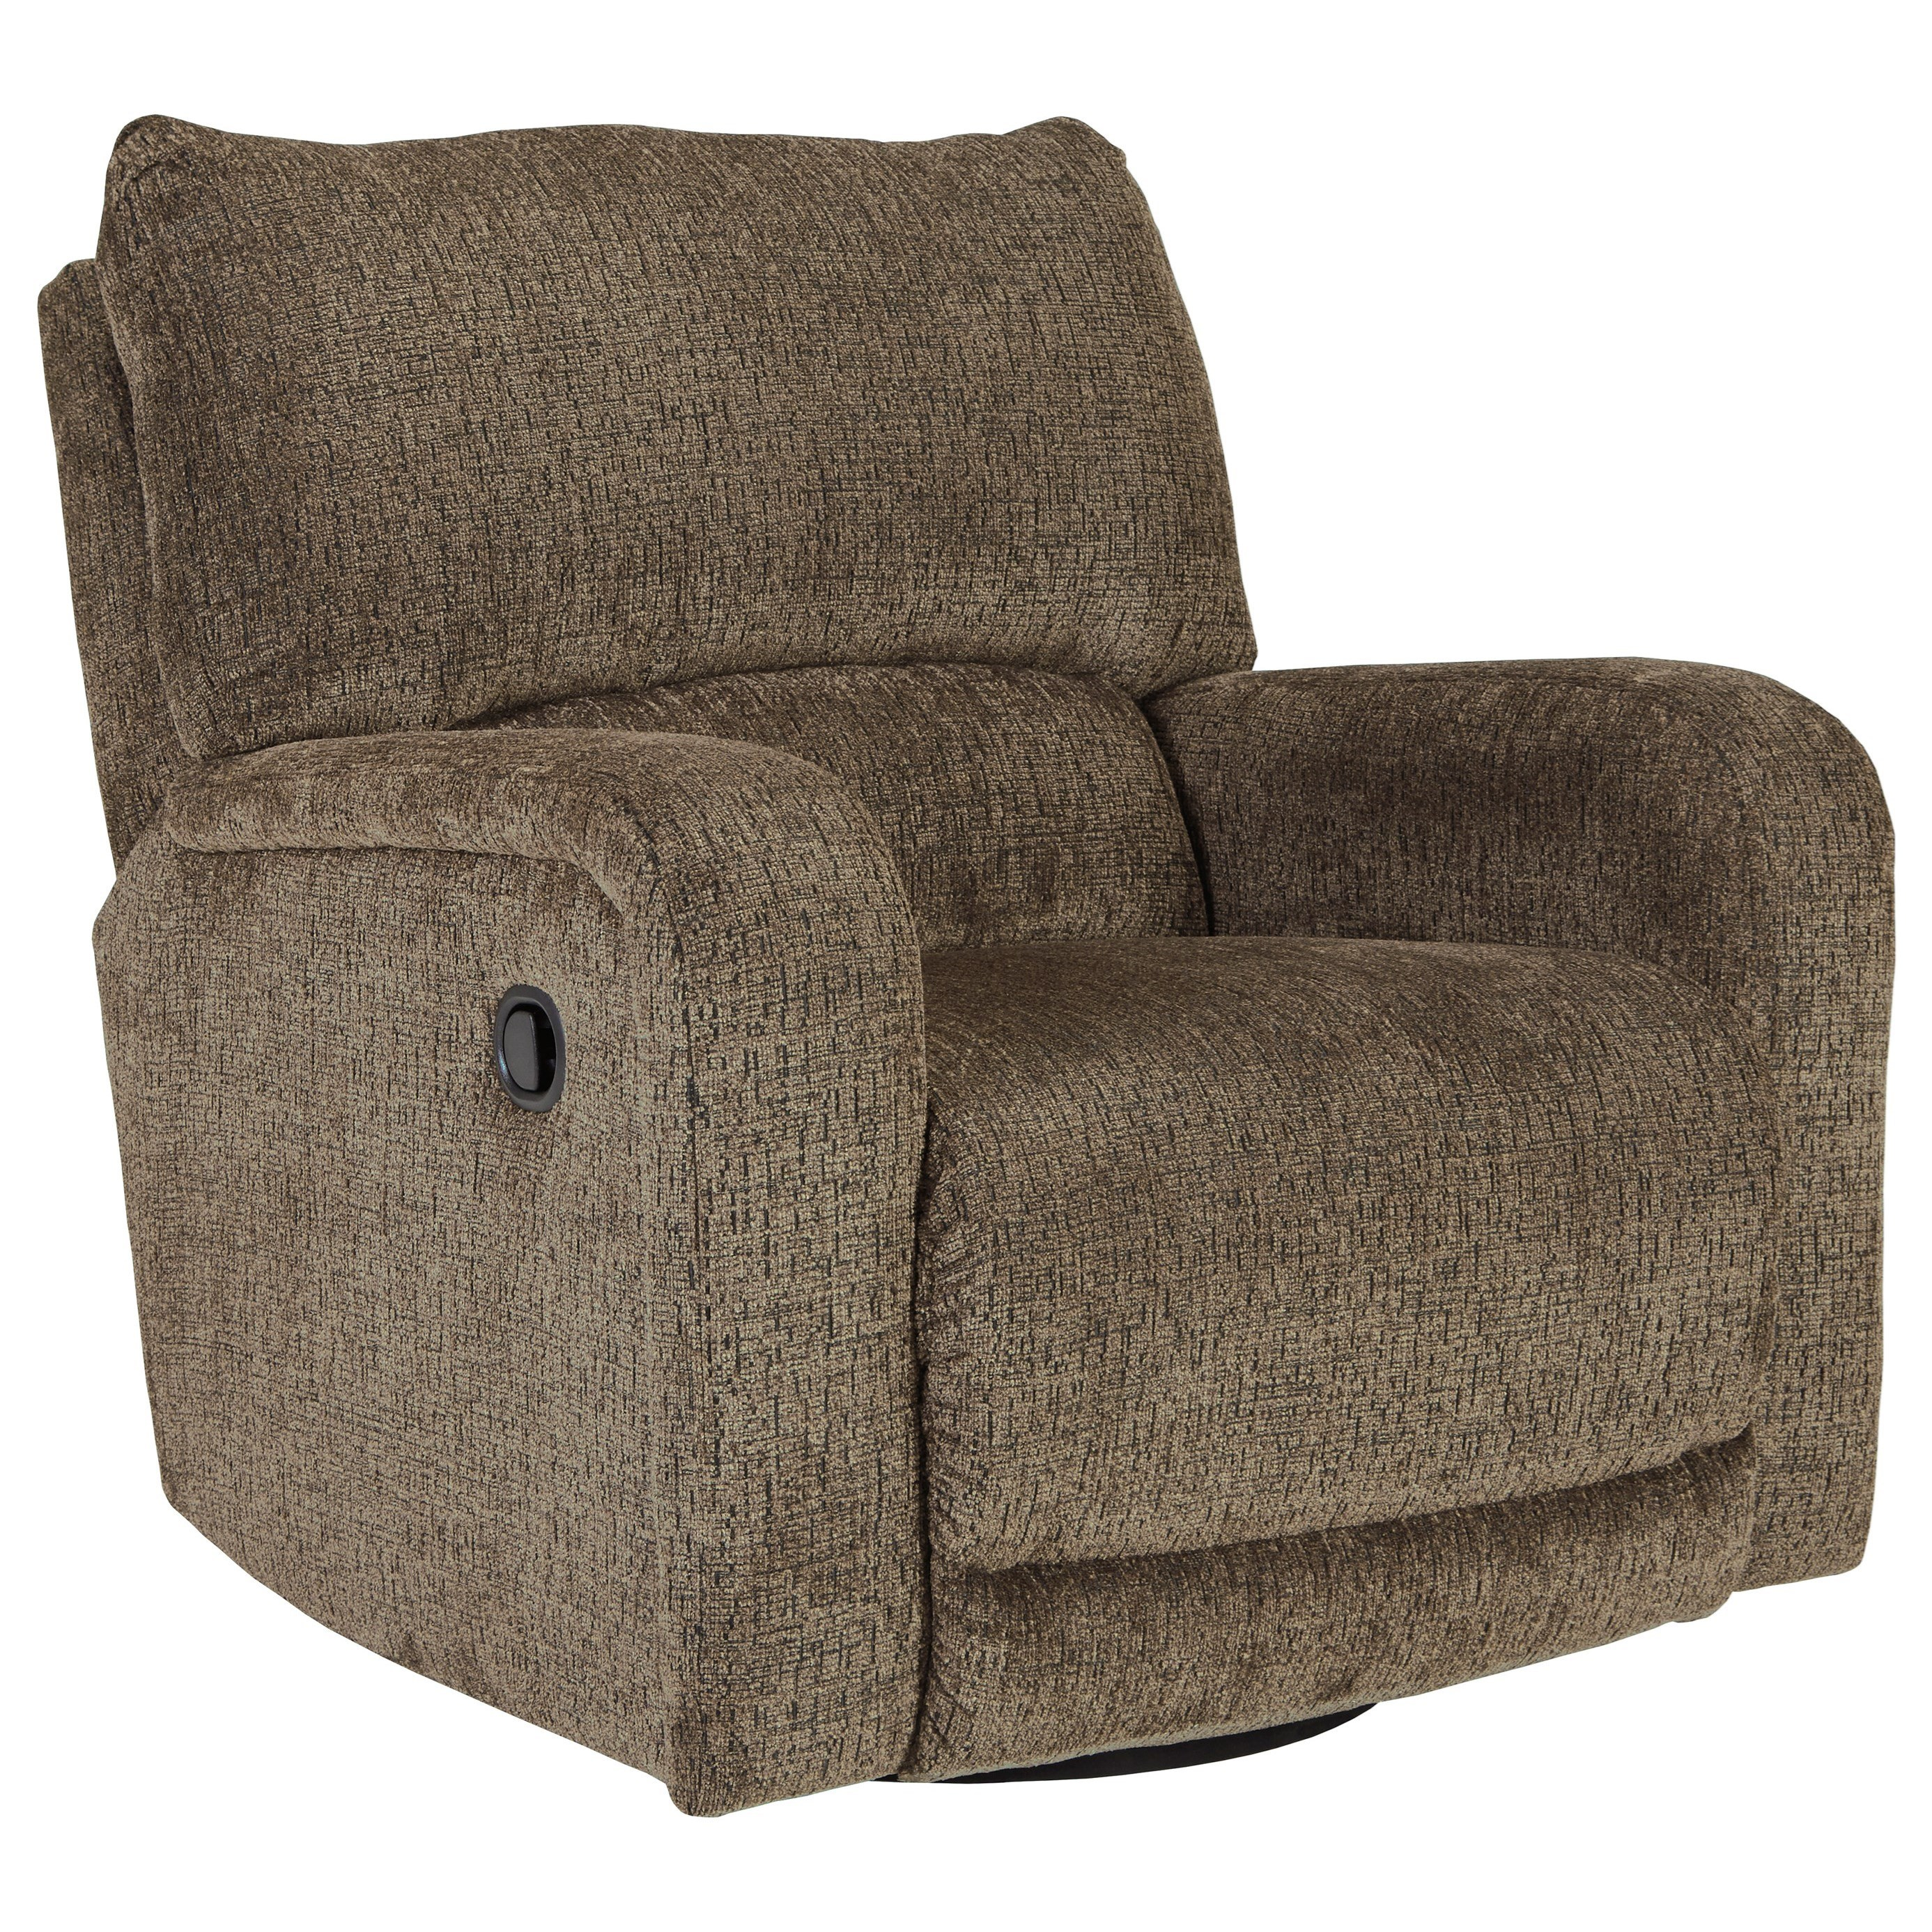 Wittlich Recliner by Signature Design by Ashley at HomeWorld Furniture